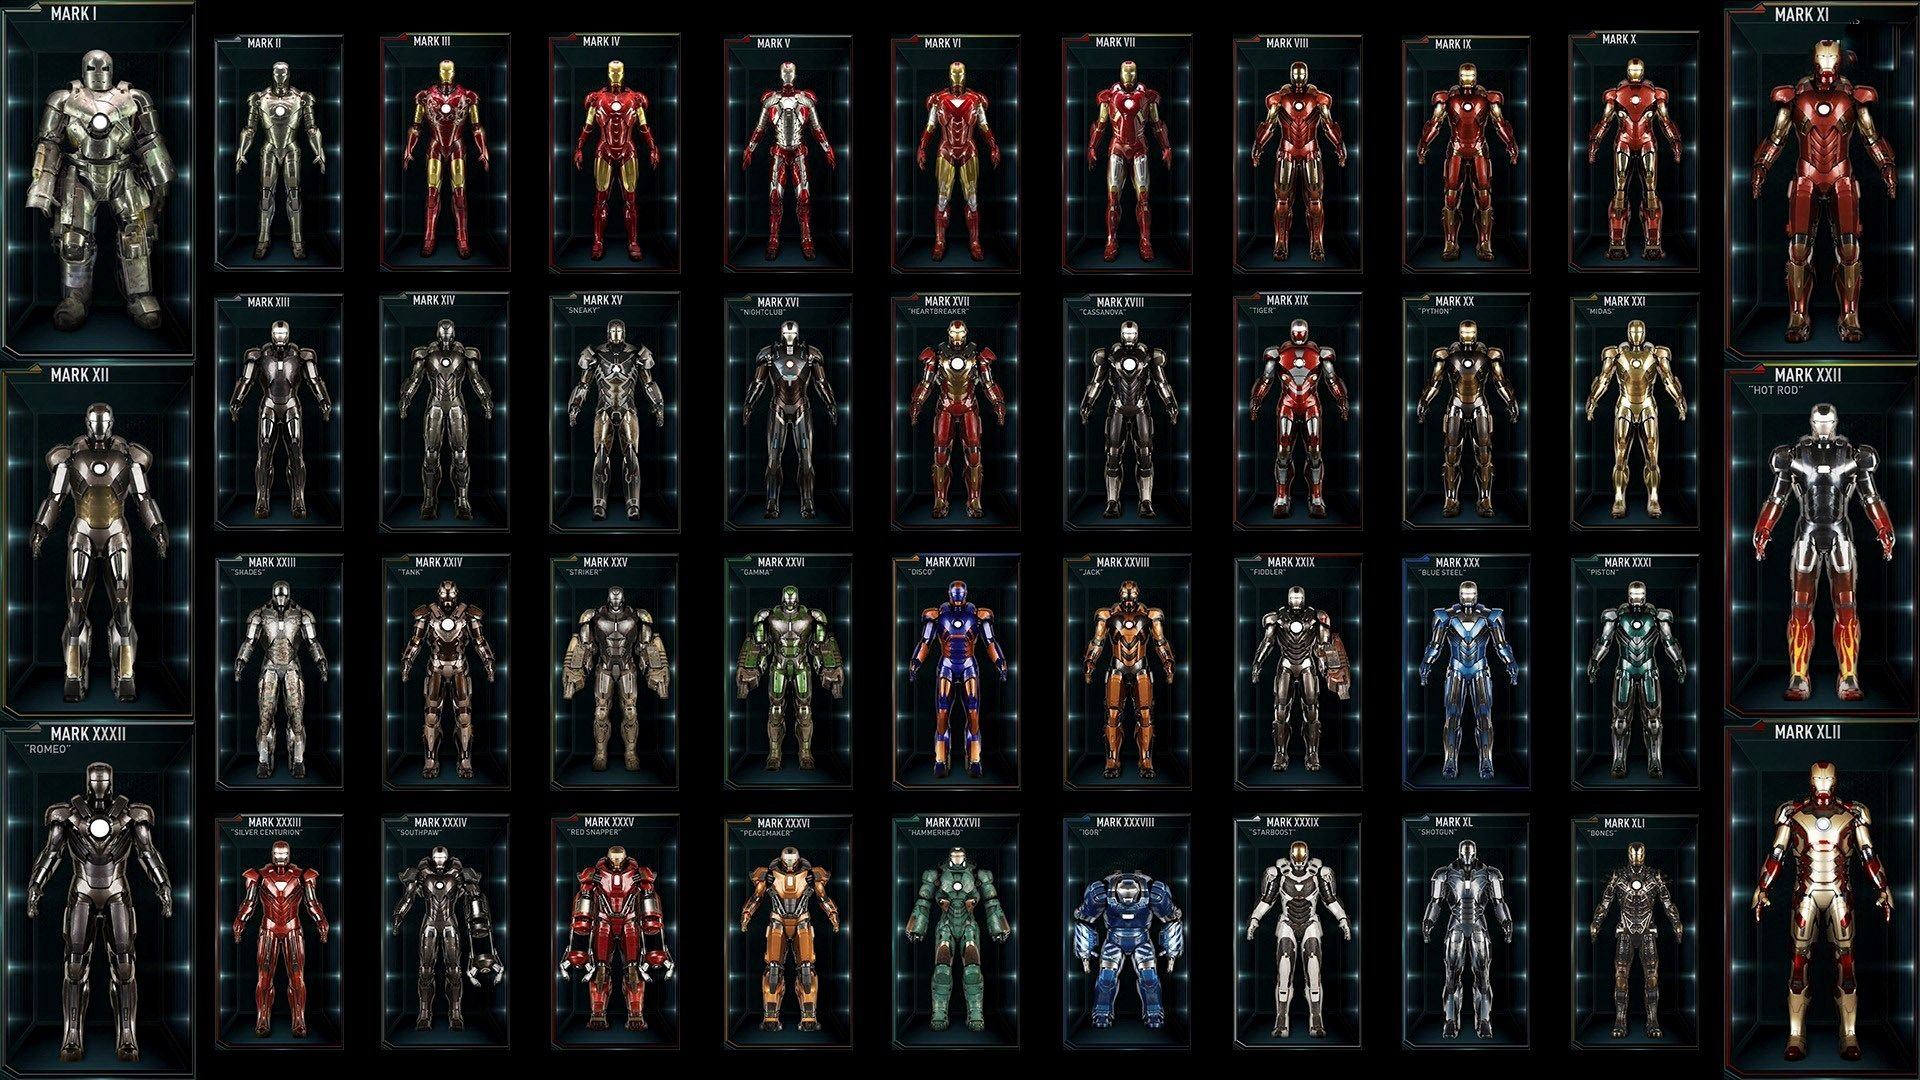 all iron man suits hd background stuff that i find mildly amusing